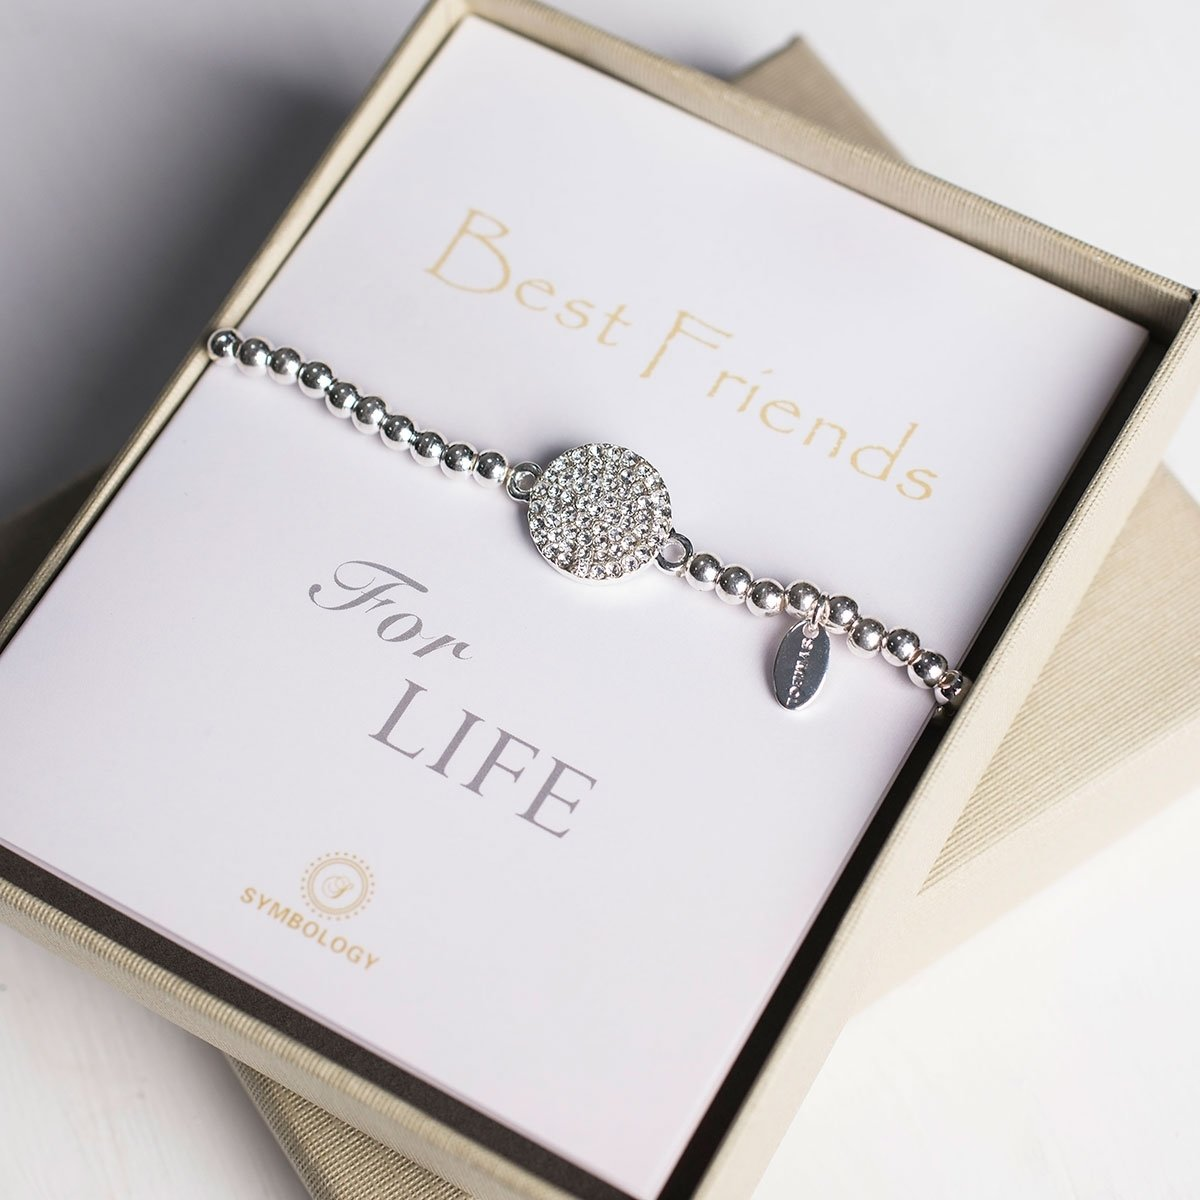 10 Fashionable 40Th Birthday Gift Ideas For Best Friend Symbology Friends Bracelet Gettingpersonal Co Uk